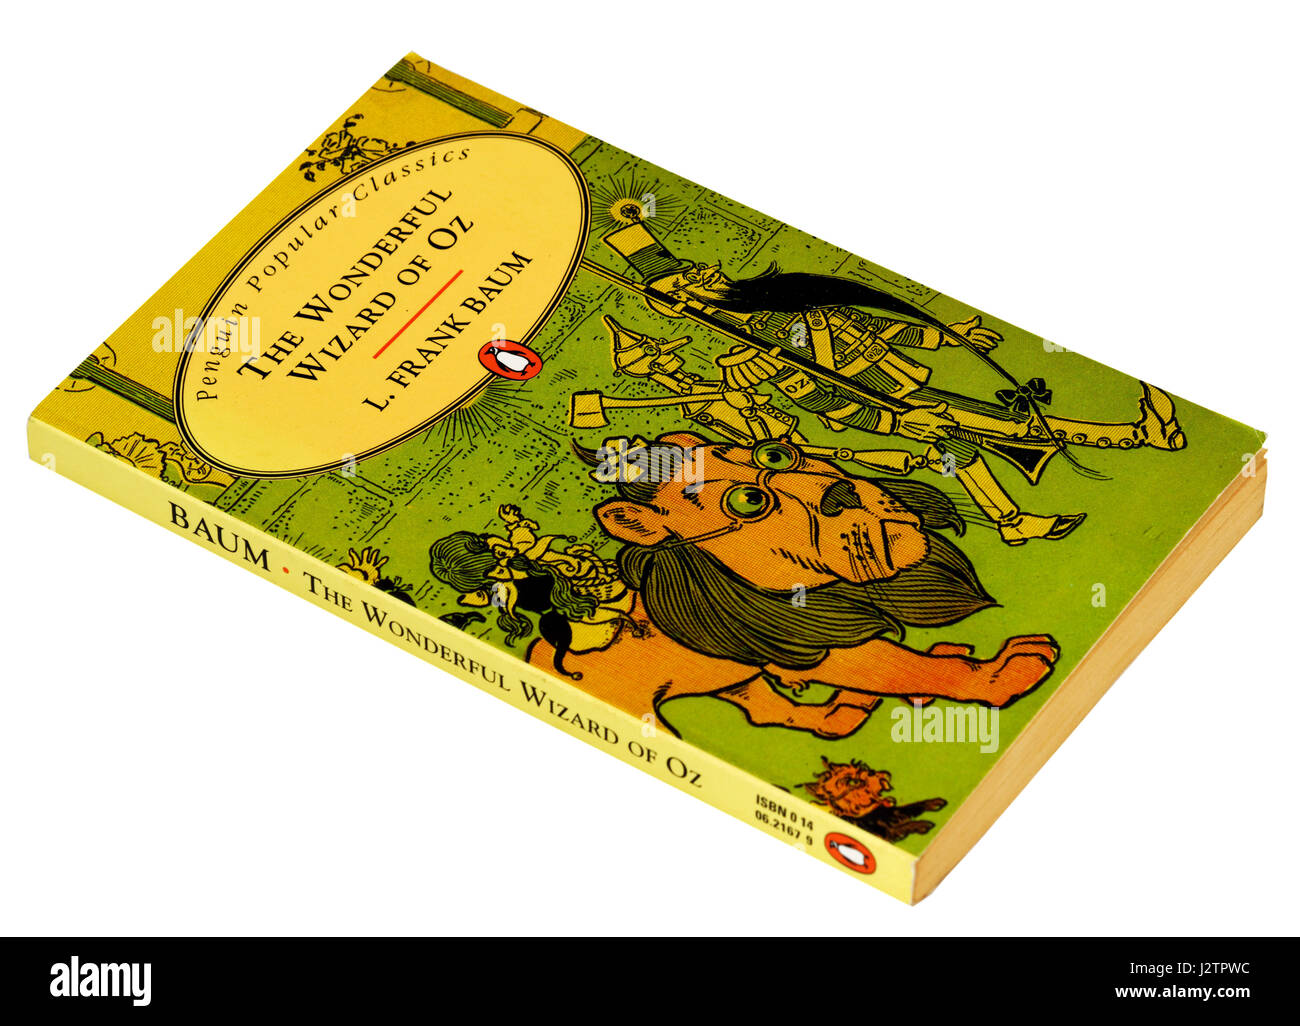 The Wonderful Wizard of Oz by L. Frank Baum - Stock Image